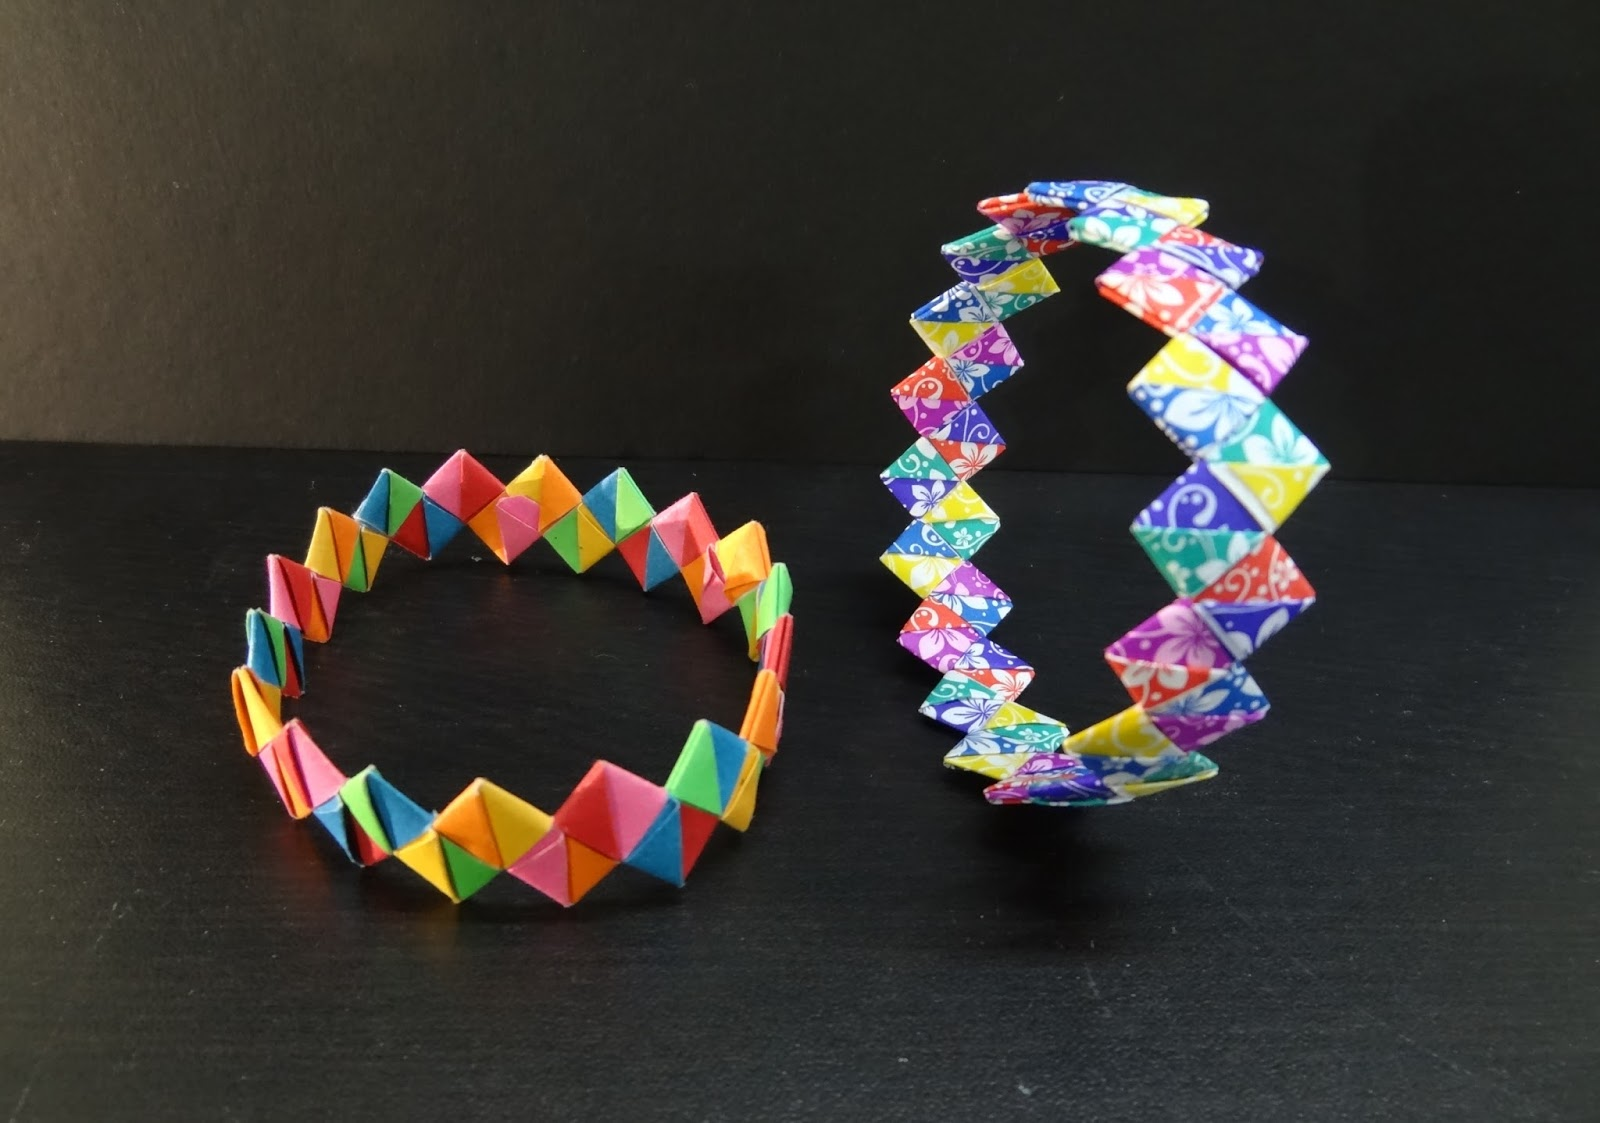 Paper crafts may 2017 follow the steps in this diy paper wristband friendship band bracelet tutorial to create your own paper crafts bracelet for yourself and your friends solutioingenieria Choice Image